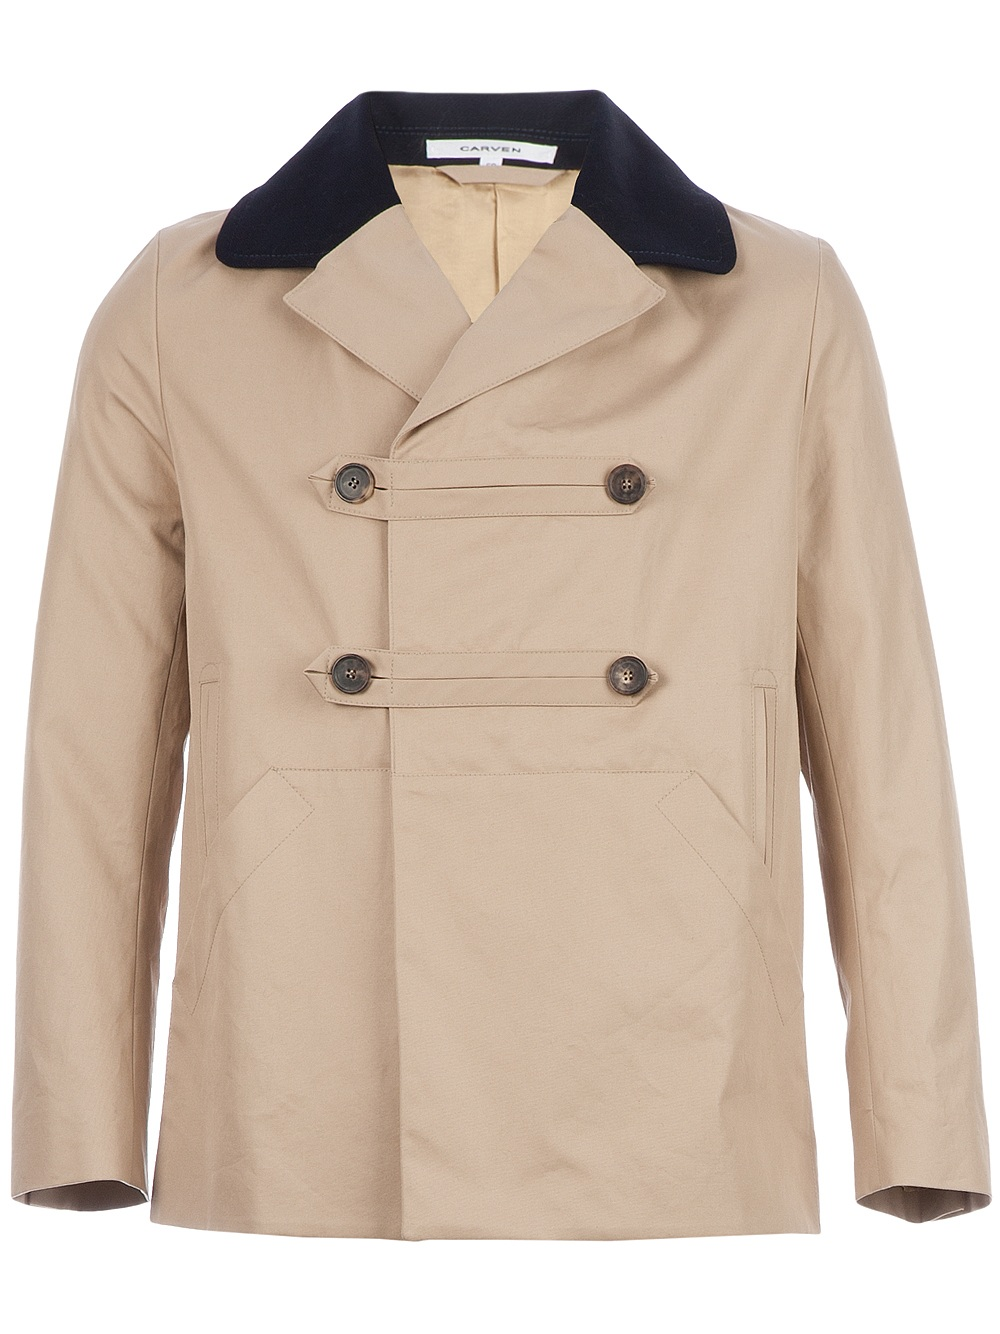 Find great deals on eBay for cropped trench jacket. Shop with confidence. Skip to main content. eBay: Shop by category. Trench Cropped Coats & Jackets for Men. Unbranded Trench Coats Cropped Coats, Jackets & Vests for Women. Feedback. Leave feedback about your eBay search experience.